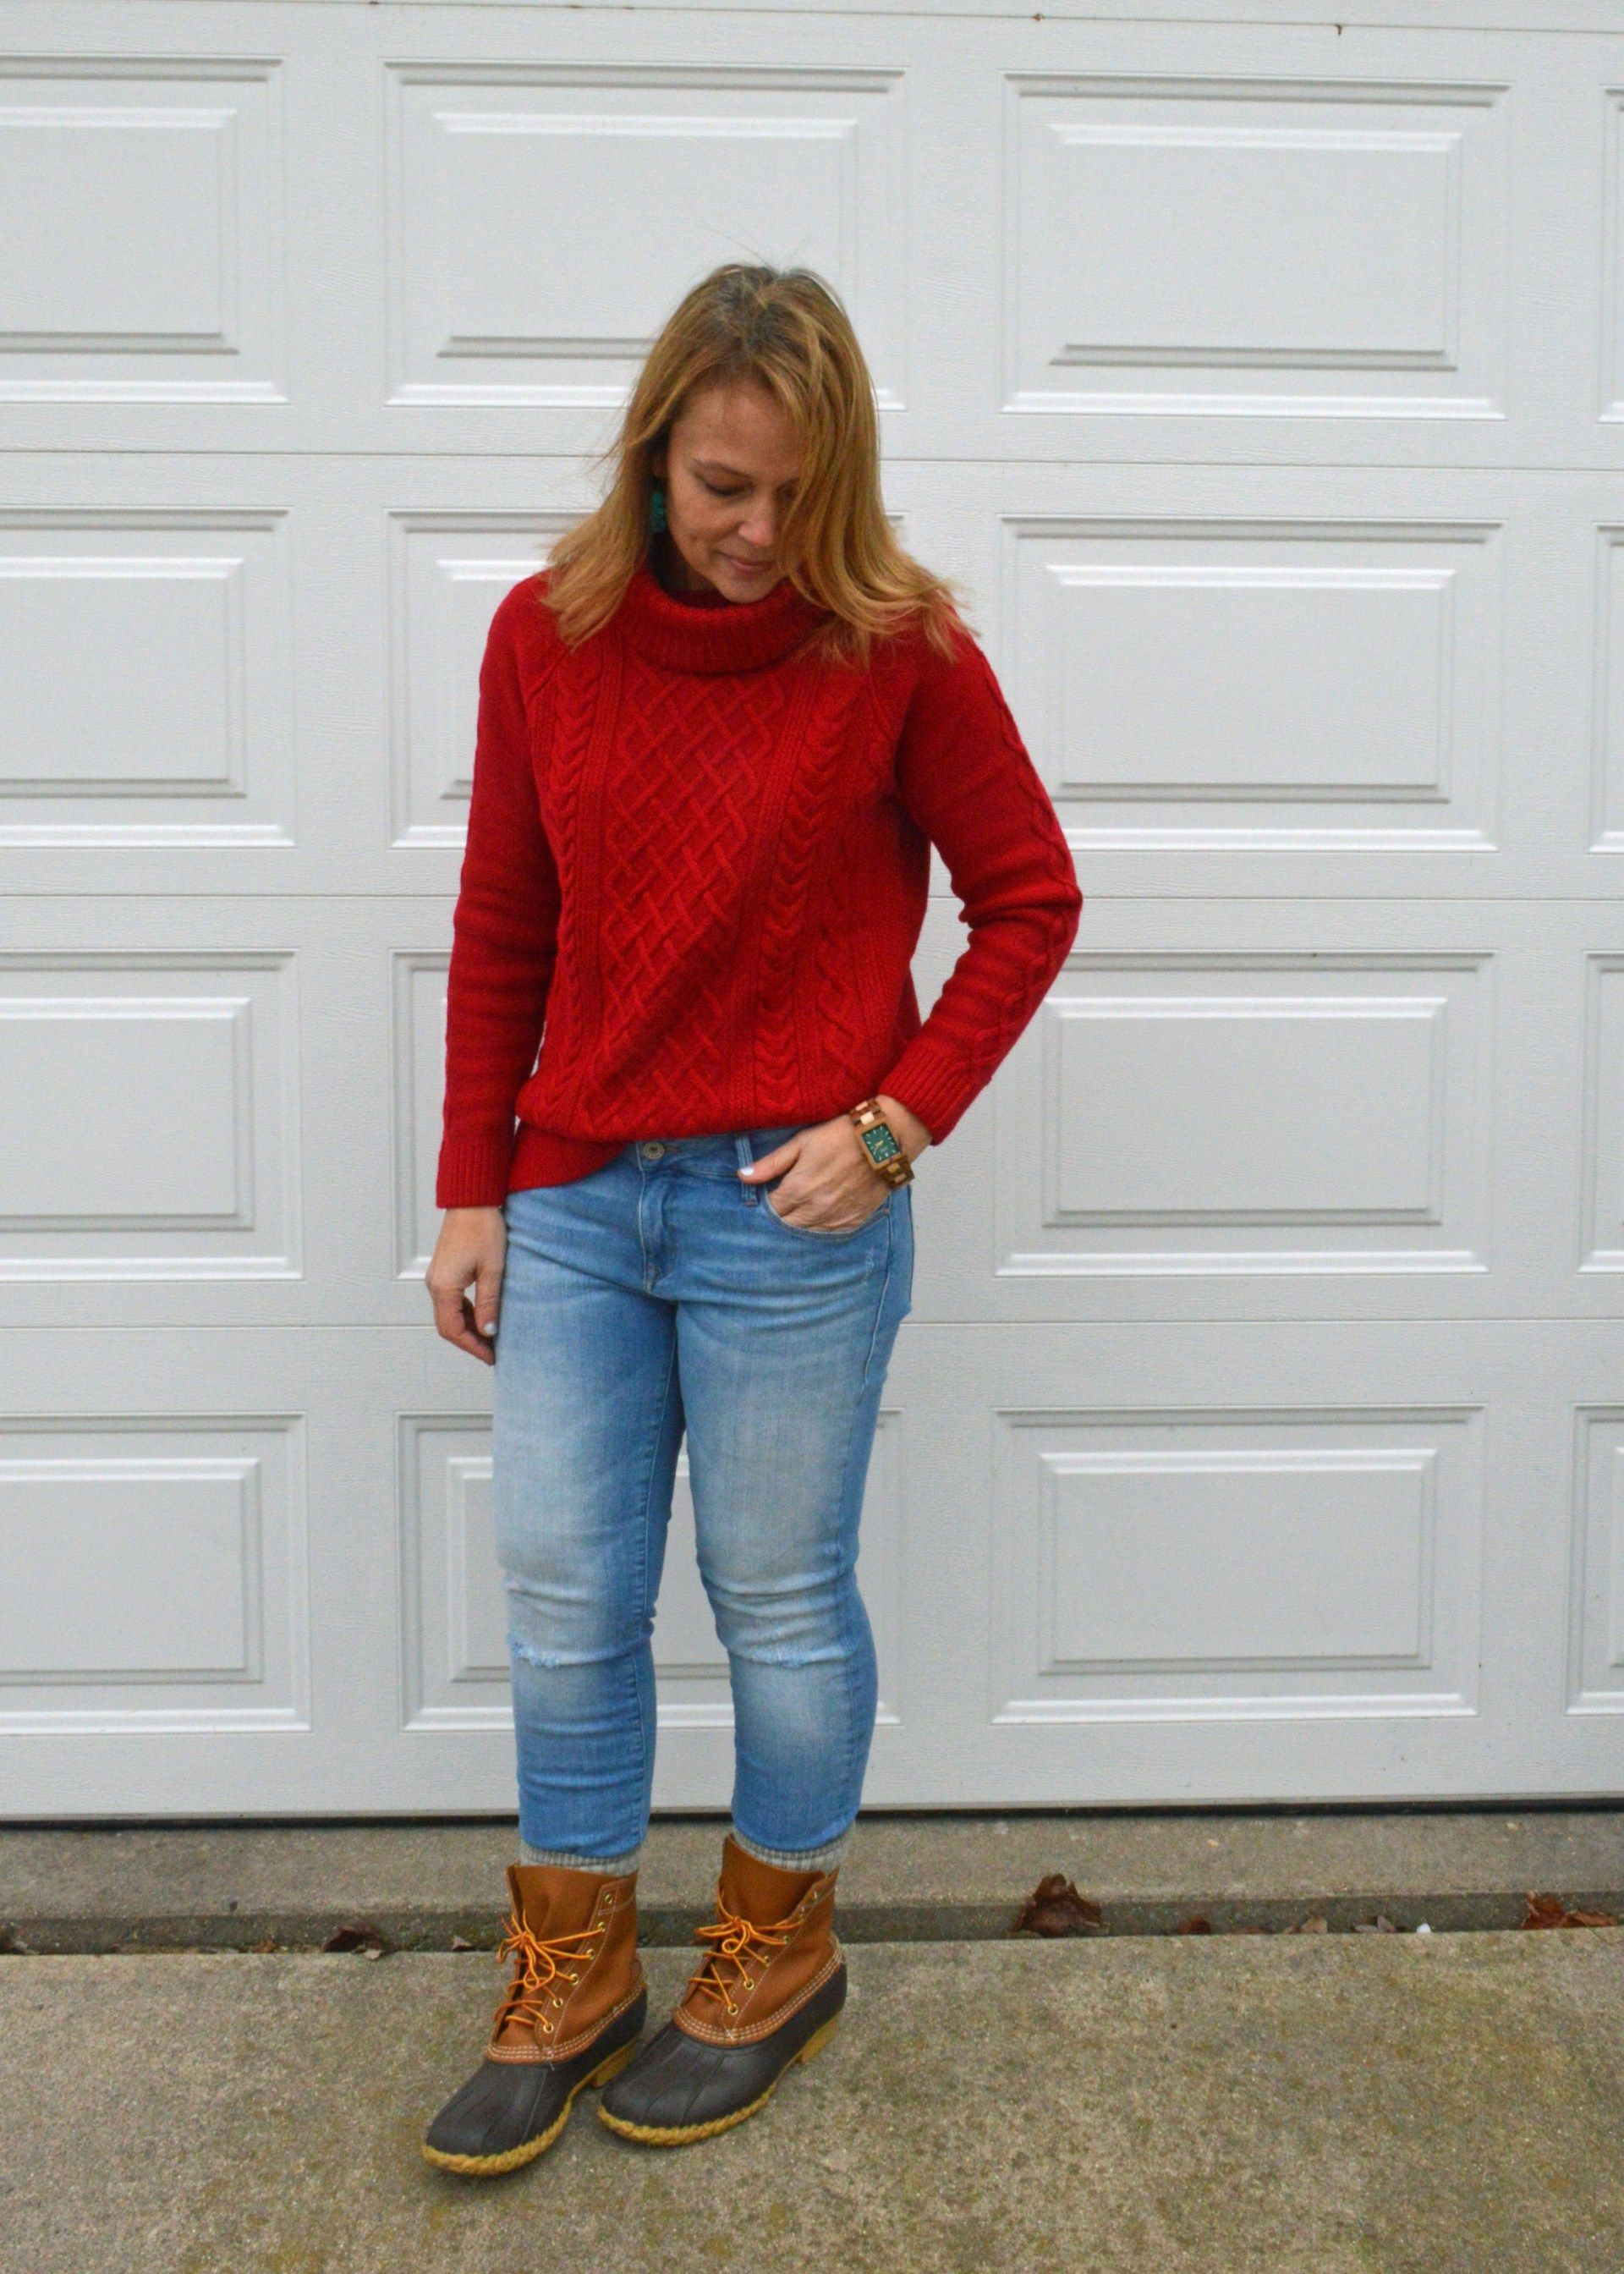 Winter outfit: red cable knit turtleneck, distressed jeans, Bean boots